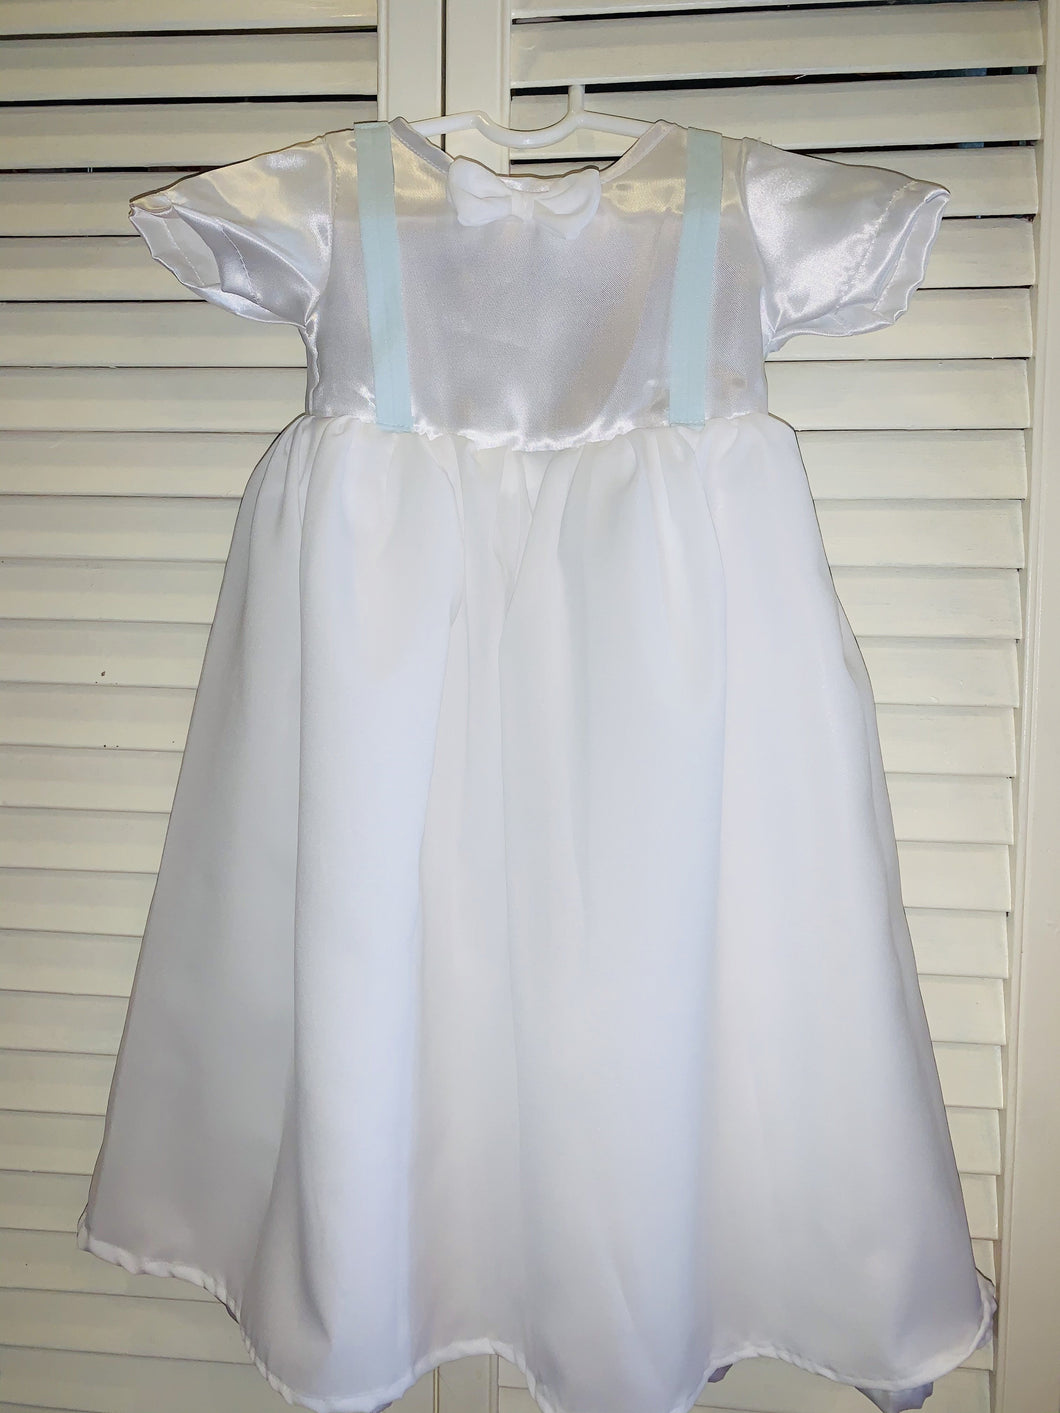 Baptismal Gown with Bow Tie and Suspender with Baby boy